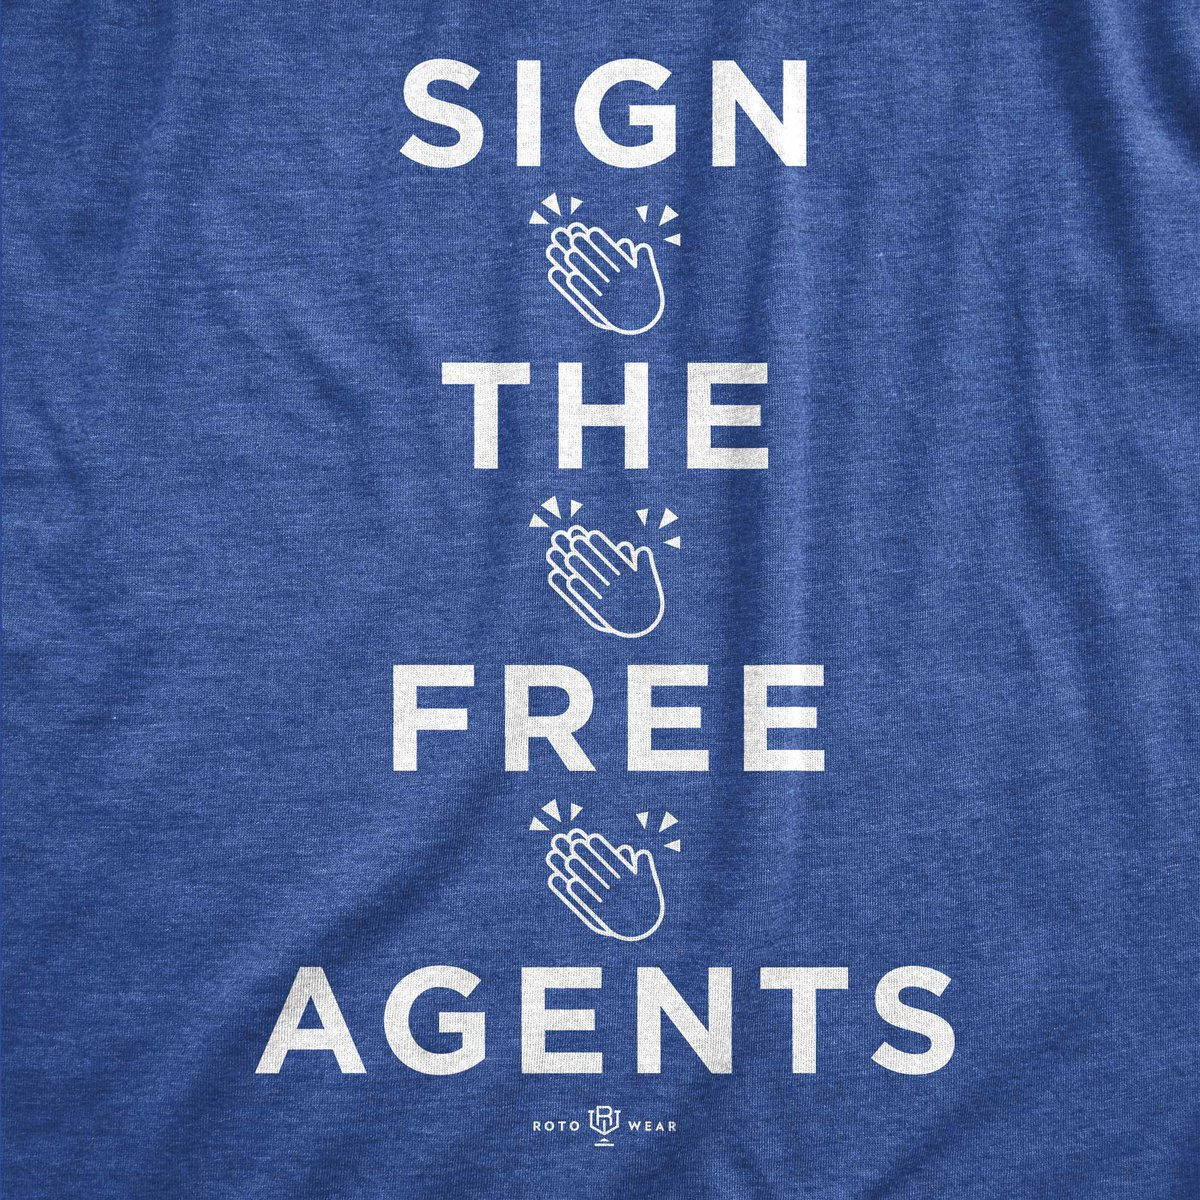 RT @RotoWear: Hey Baseball,  SIGN 👏 THE 👏 FREE 👏 AGENTS  ⚾️👕 available only at: https://t.co/7jkVyffpc3 https://t.co/paWldzzPP0